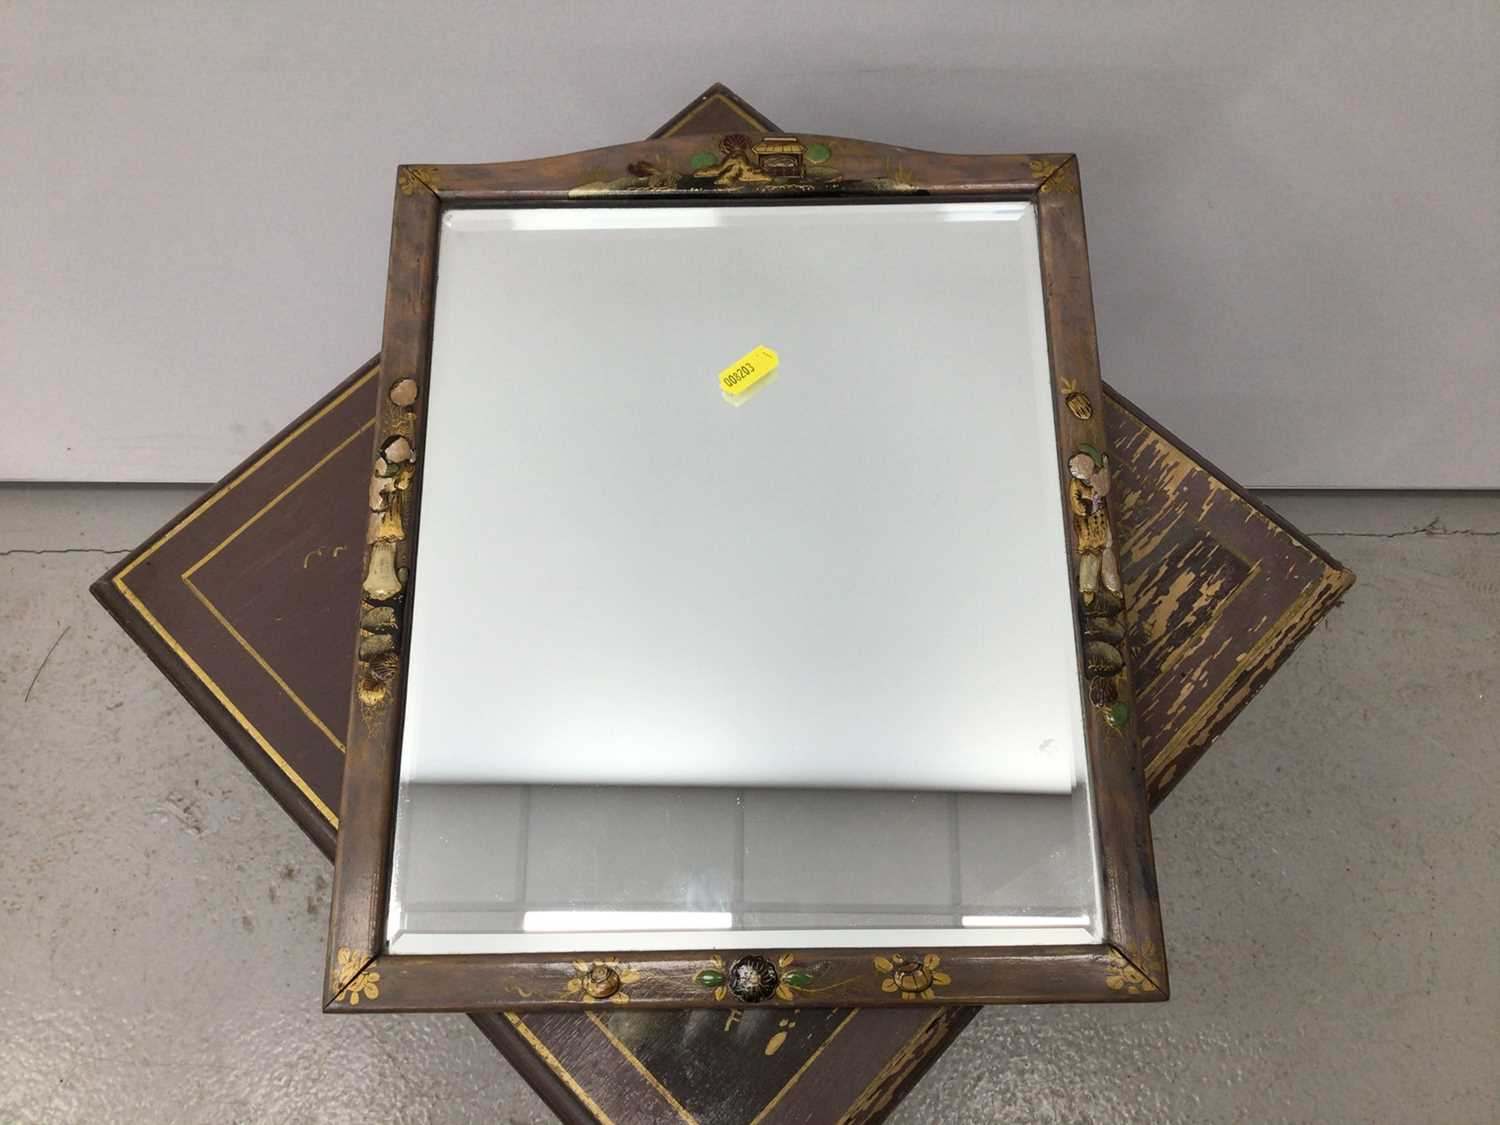 Oriental painted sewing table with mirror H63, W35.5cm mirror H35, W28.5cm - Image 4 of 5